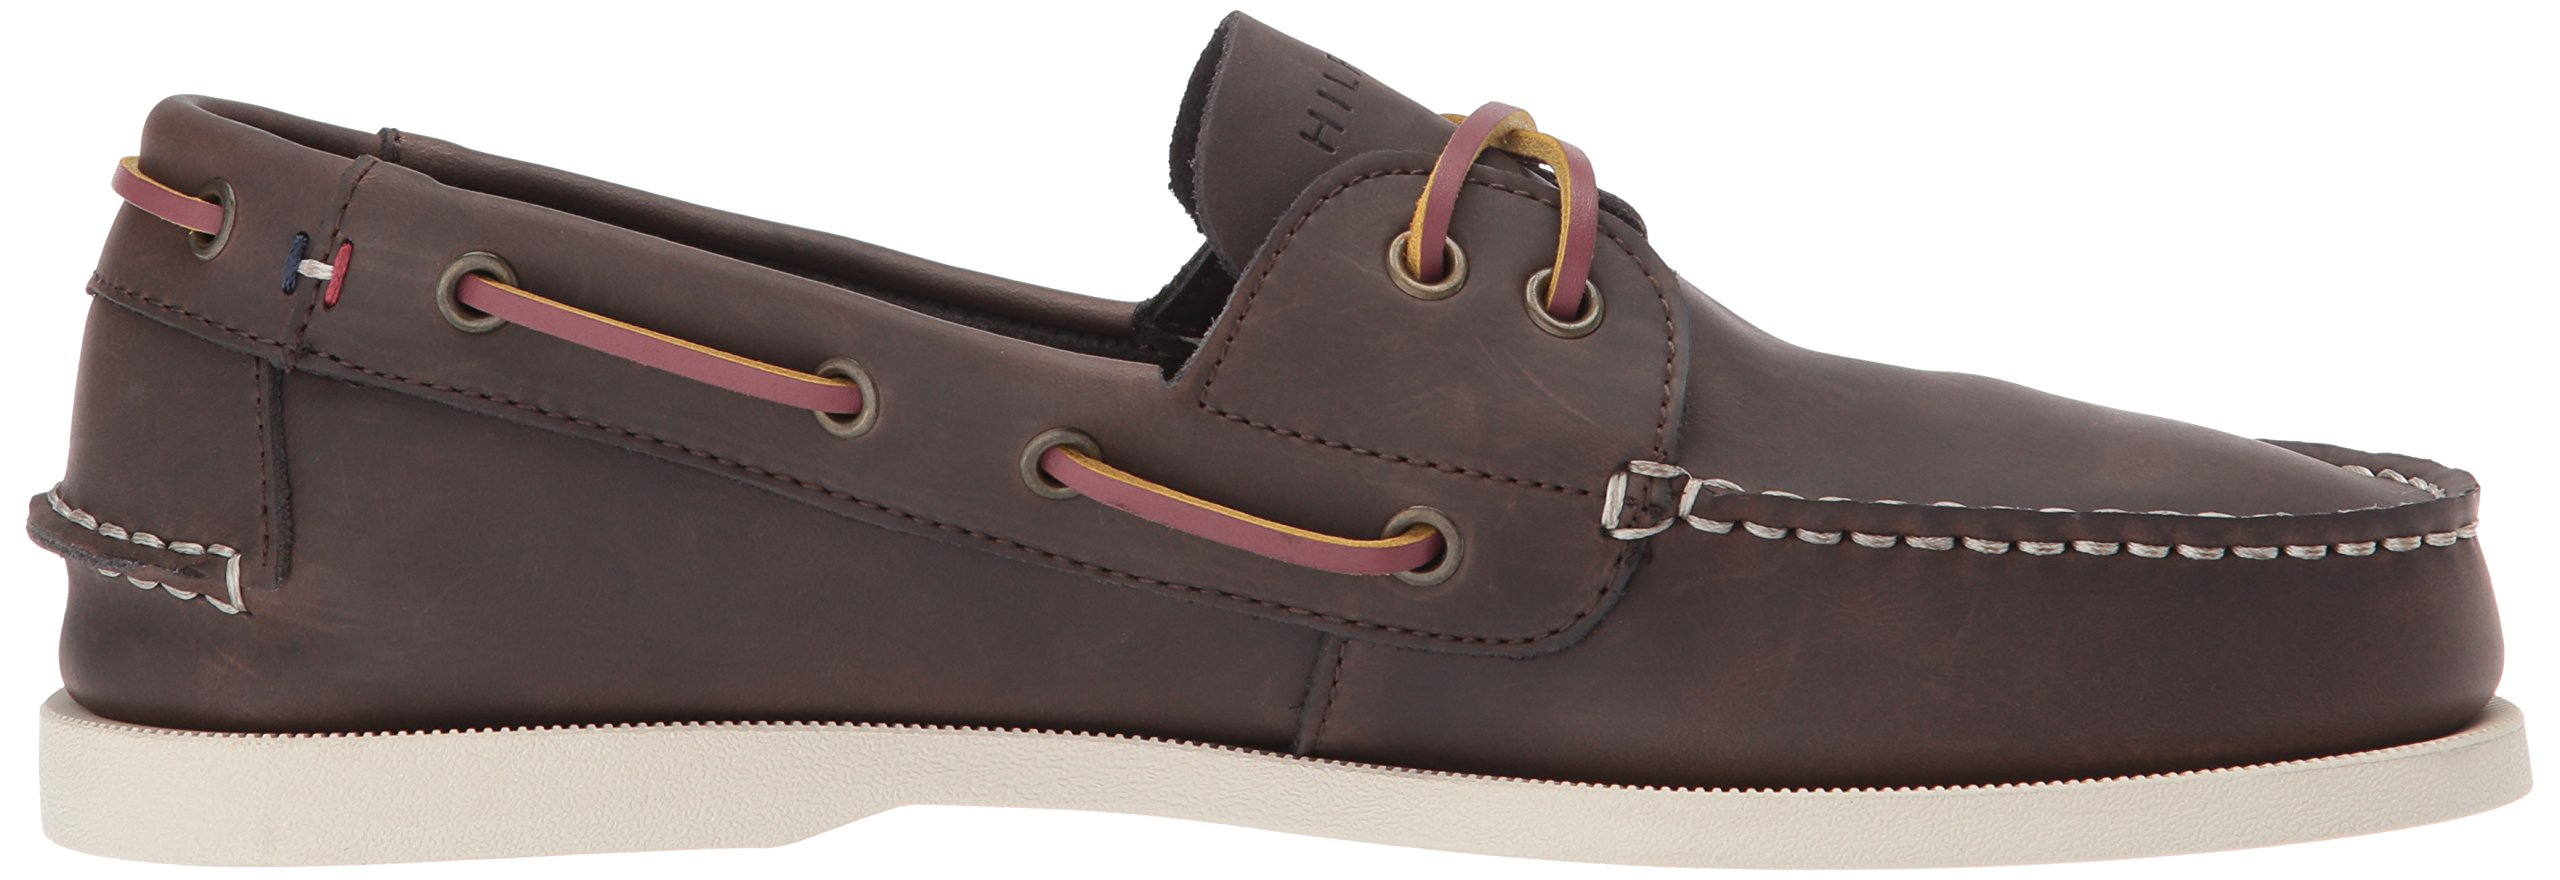 Tommy Hilfiger Men's Bowman Boat shoe,Coffee Bean,8.5 M US by Tommy Hilfiger (Image #7)